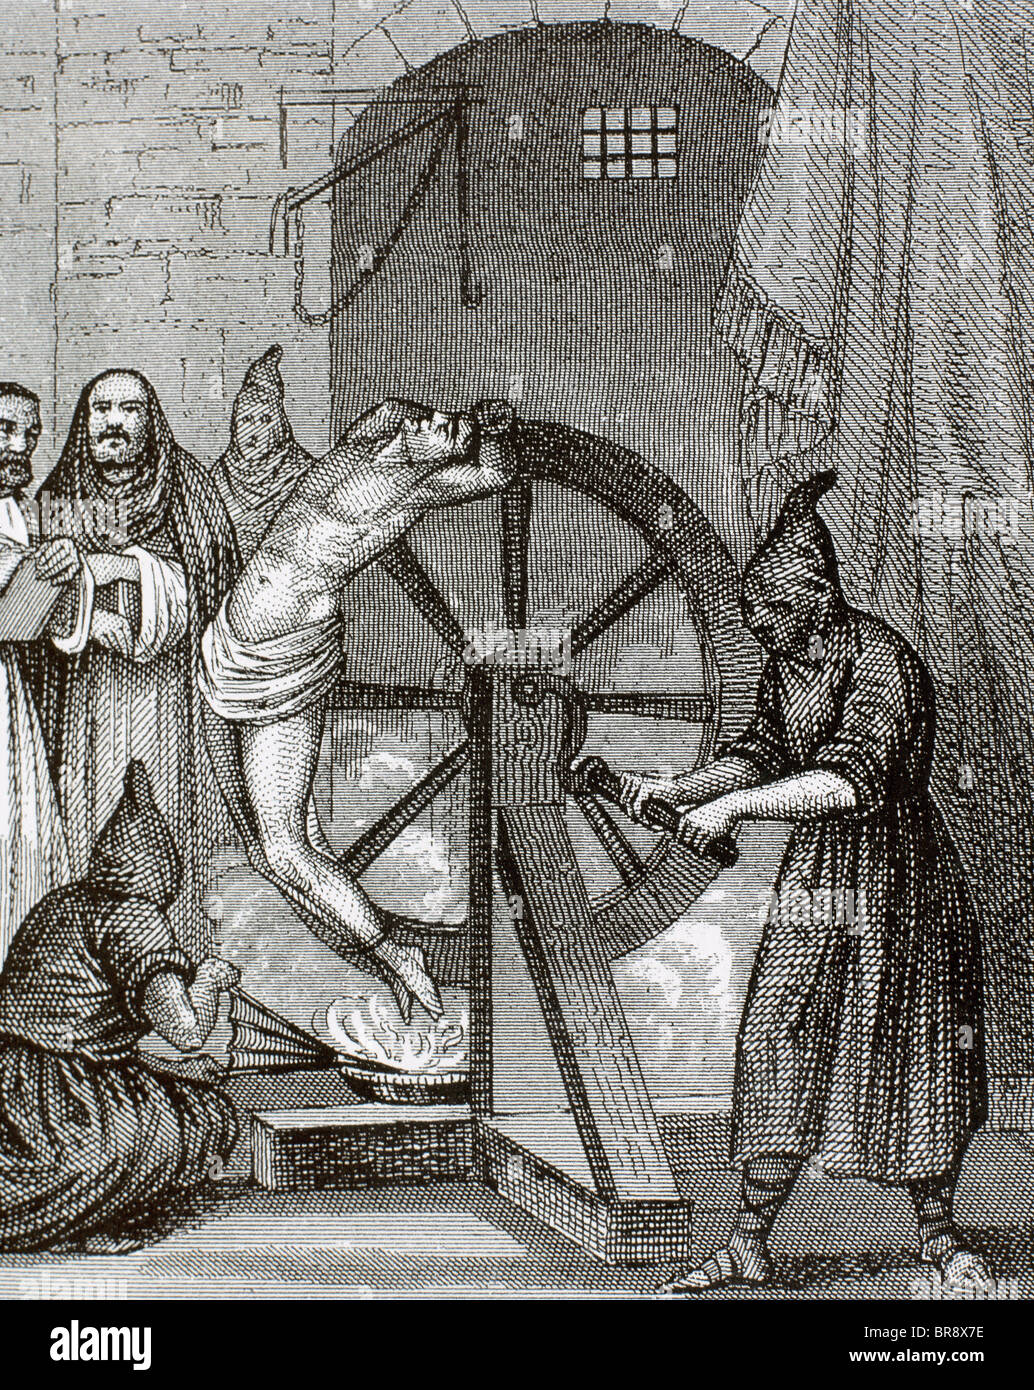 Inquisition. Instrument of torture. Wheel of Fortune. - Stock Image